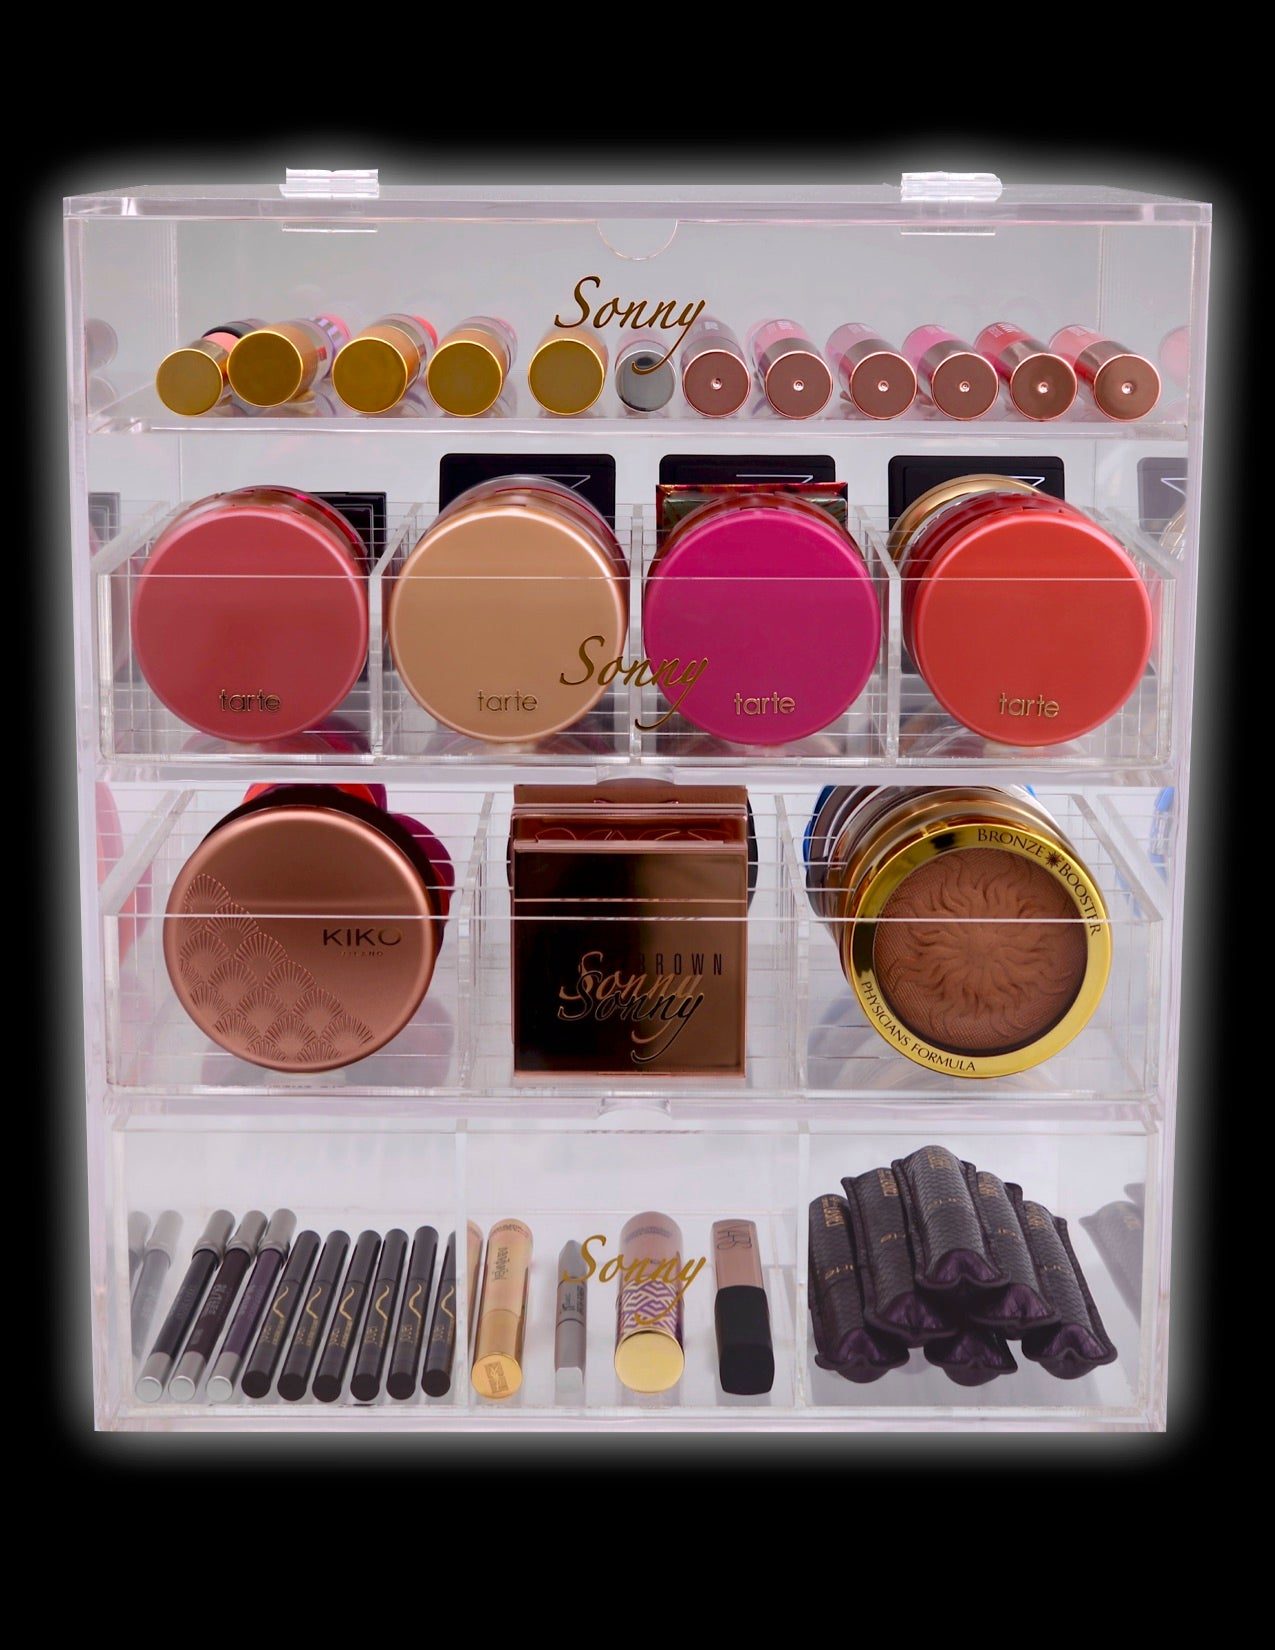 Alex Beauty Box designed to organize high end cosmetics